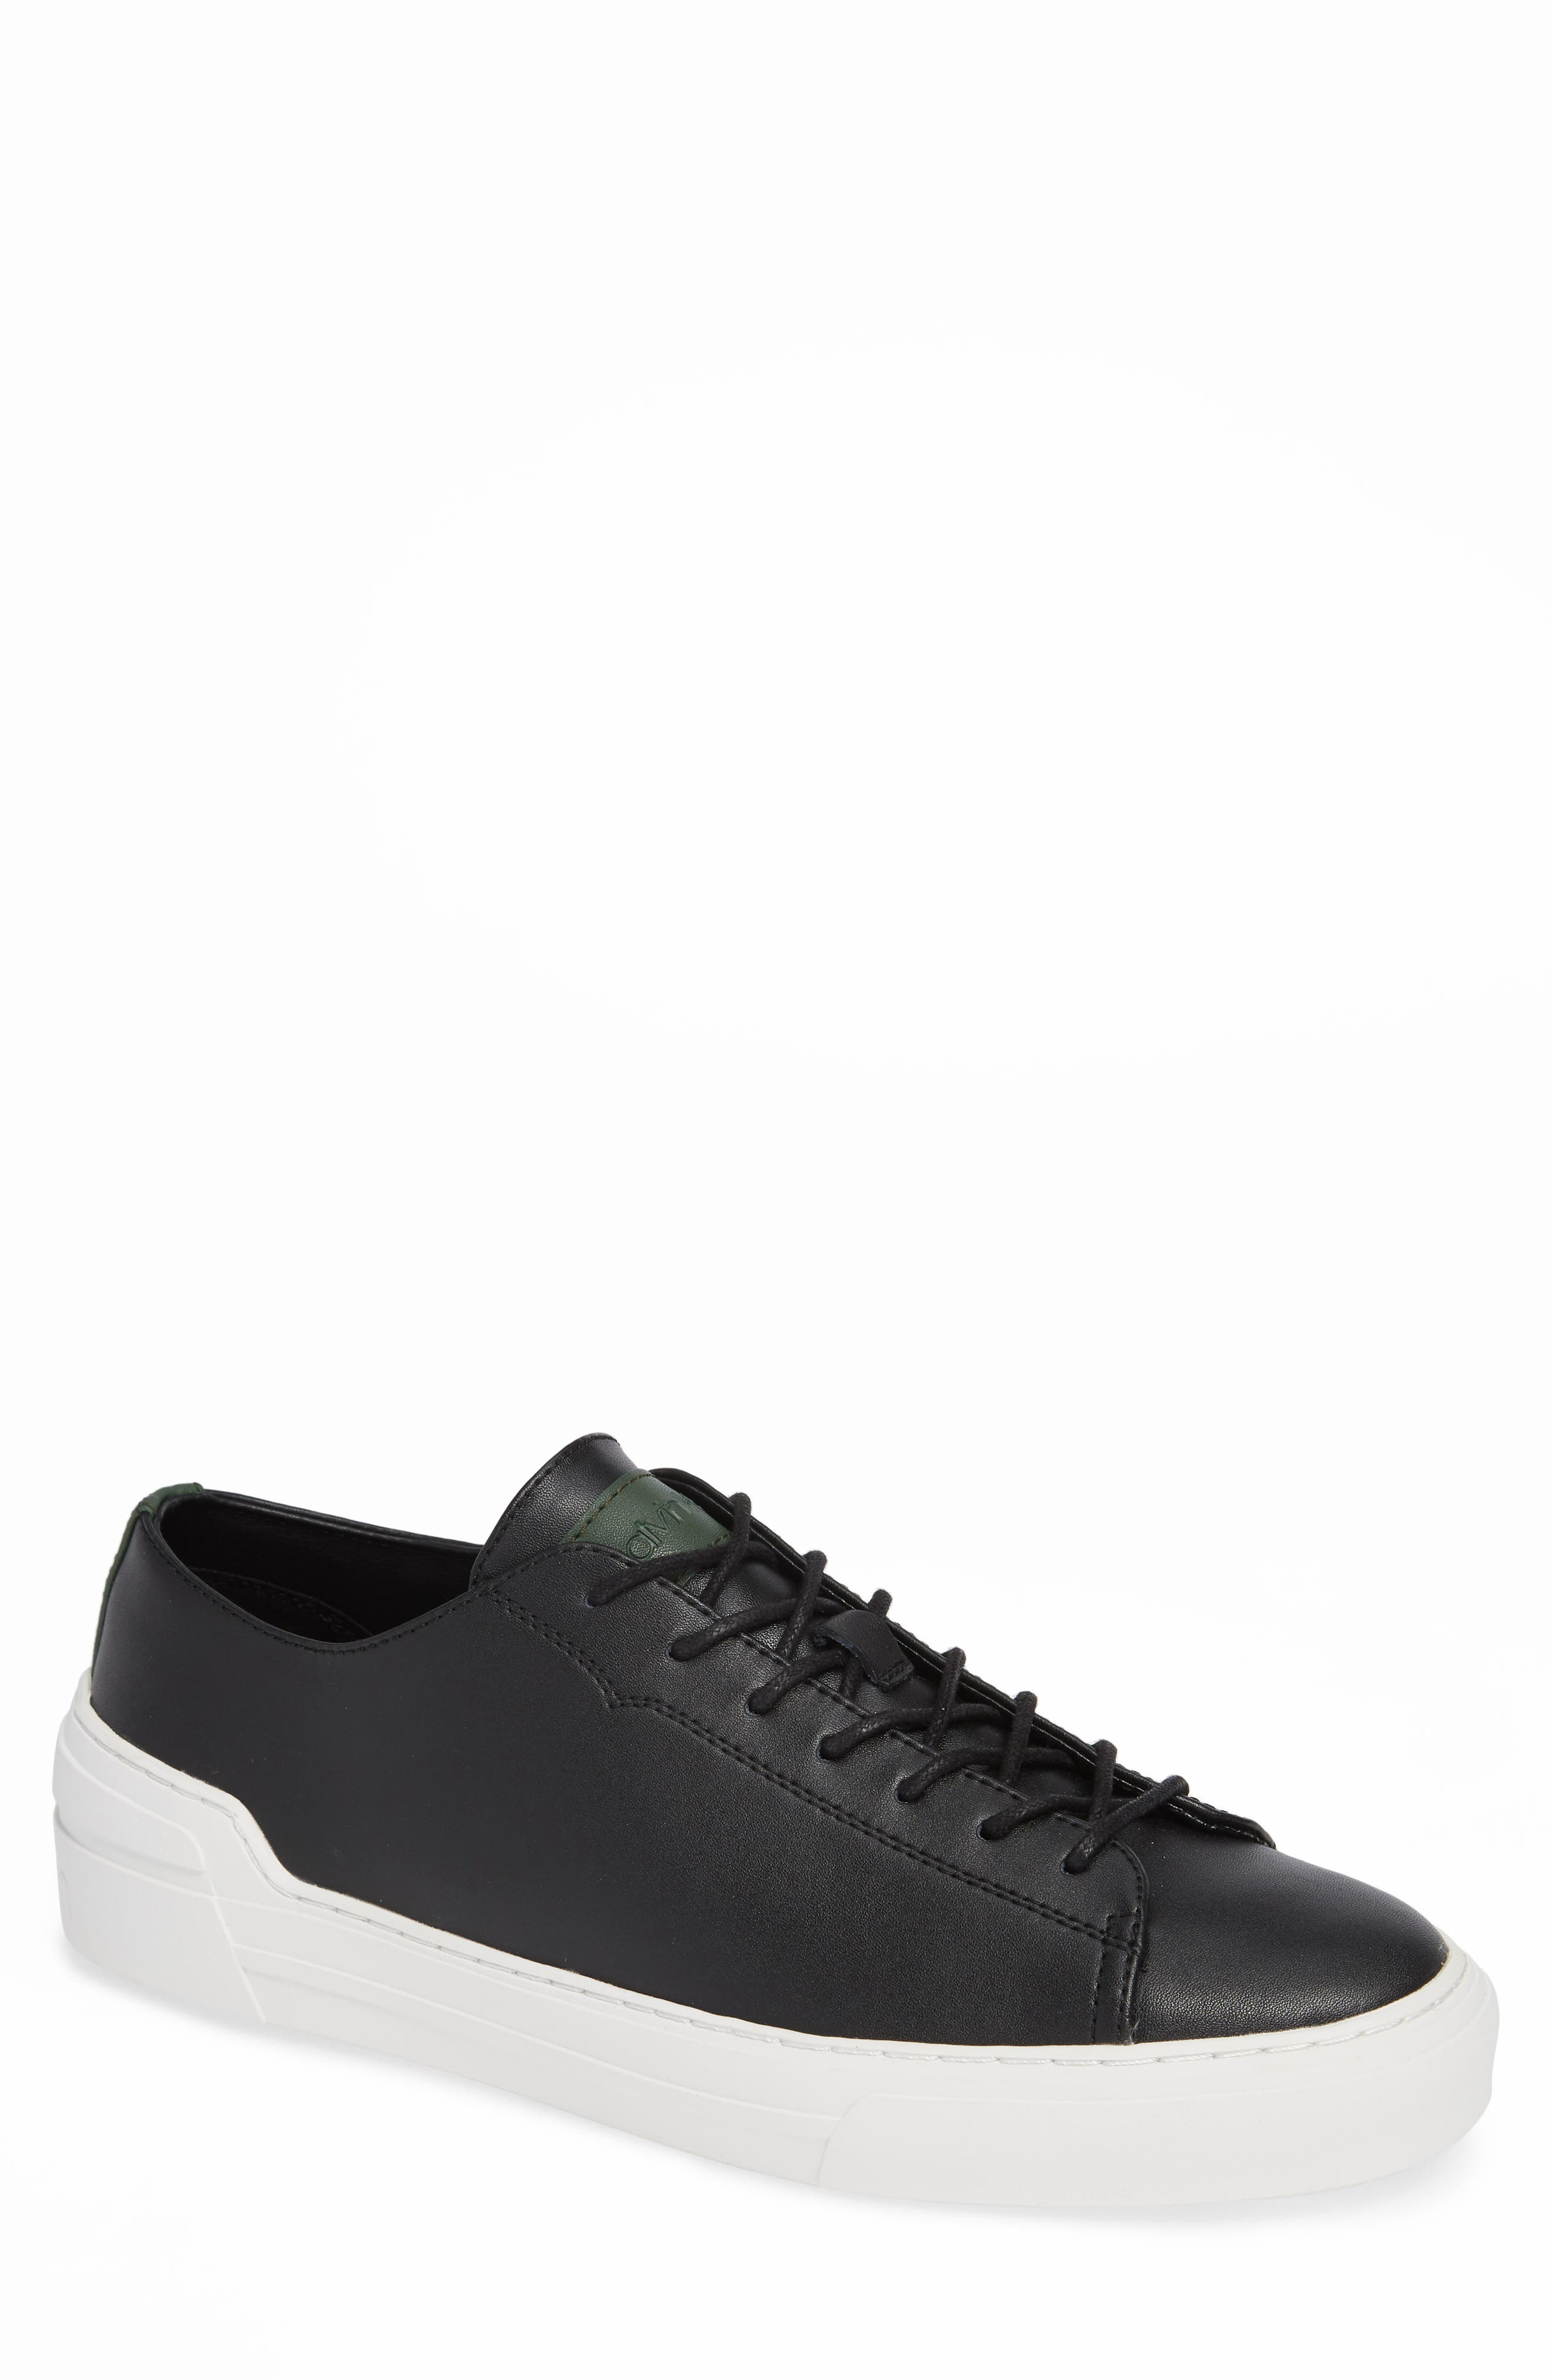 Octavian Low Top Sneaker,                         Main,                         color, BLACK LEATHER